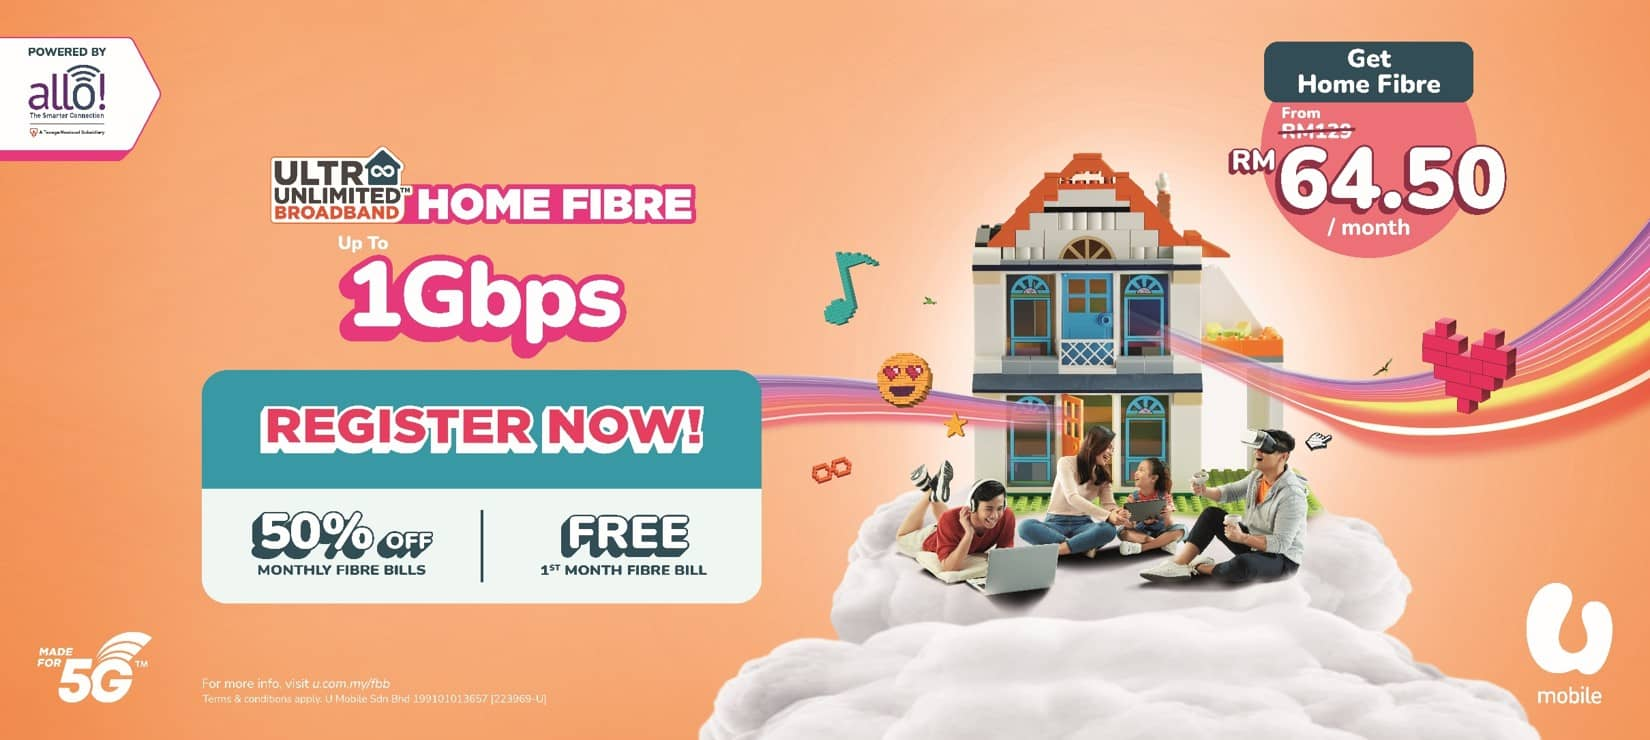 U Mobile Partners Allo to Expand its Unlimited Offering to High-Speed Fibre Broadband